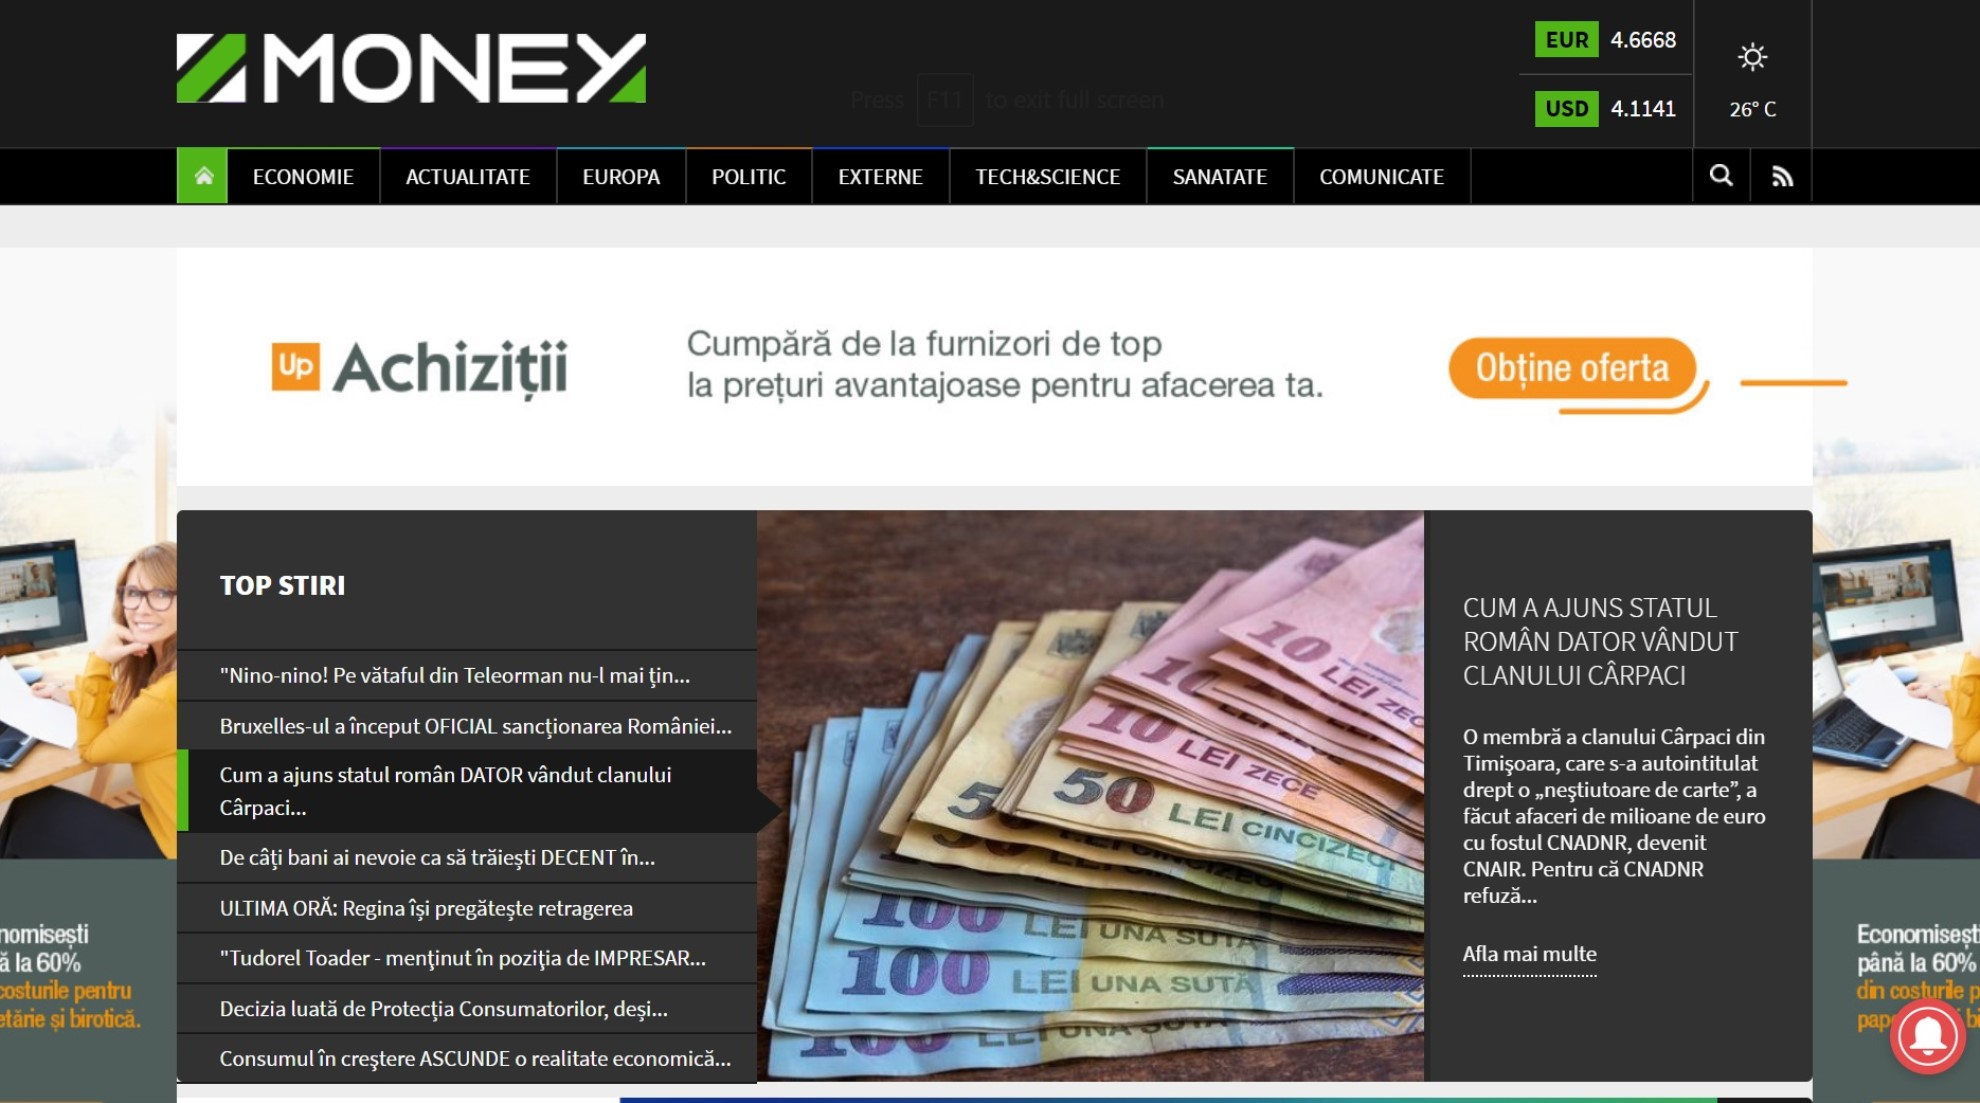 Portal de stiri de business, analize, comentarii, calculator credite, fonduri europene, burse, banci si companii. Sustinut editorial de Money Channel, Business